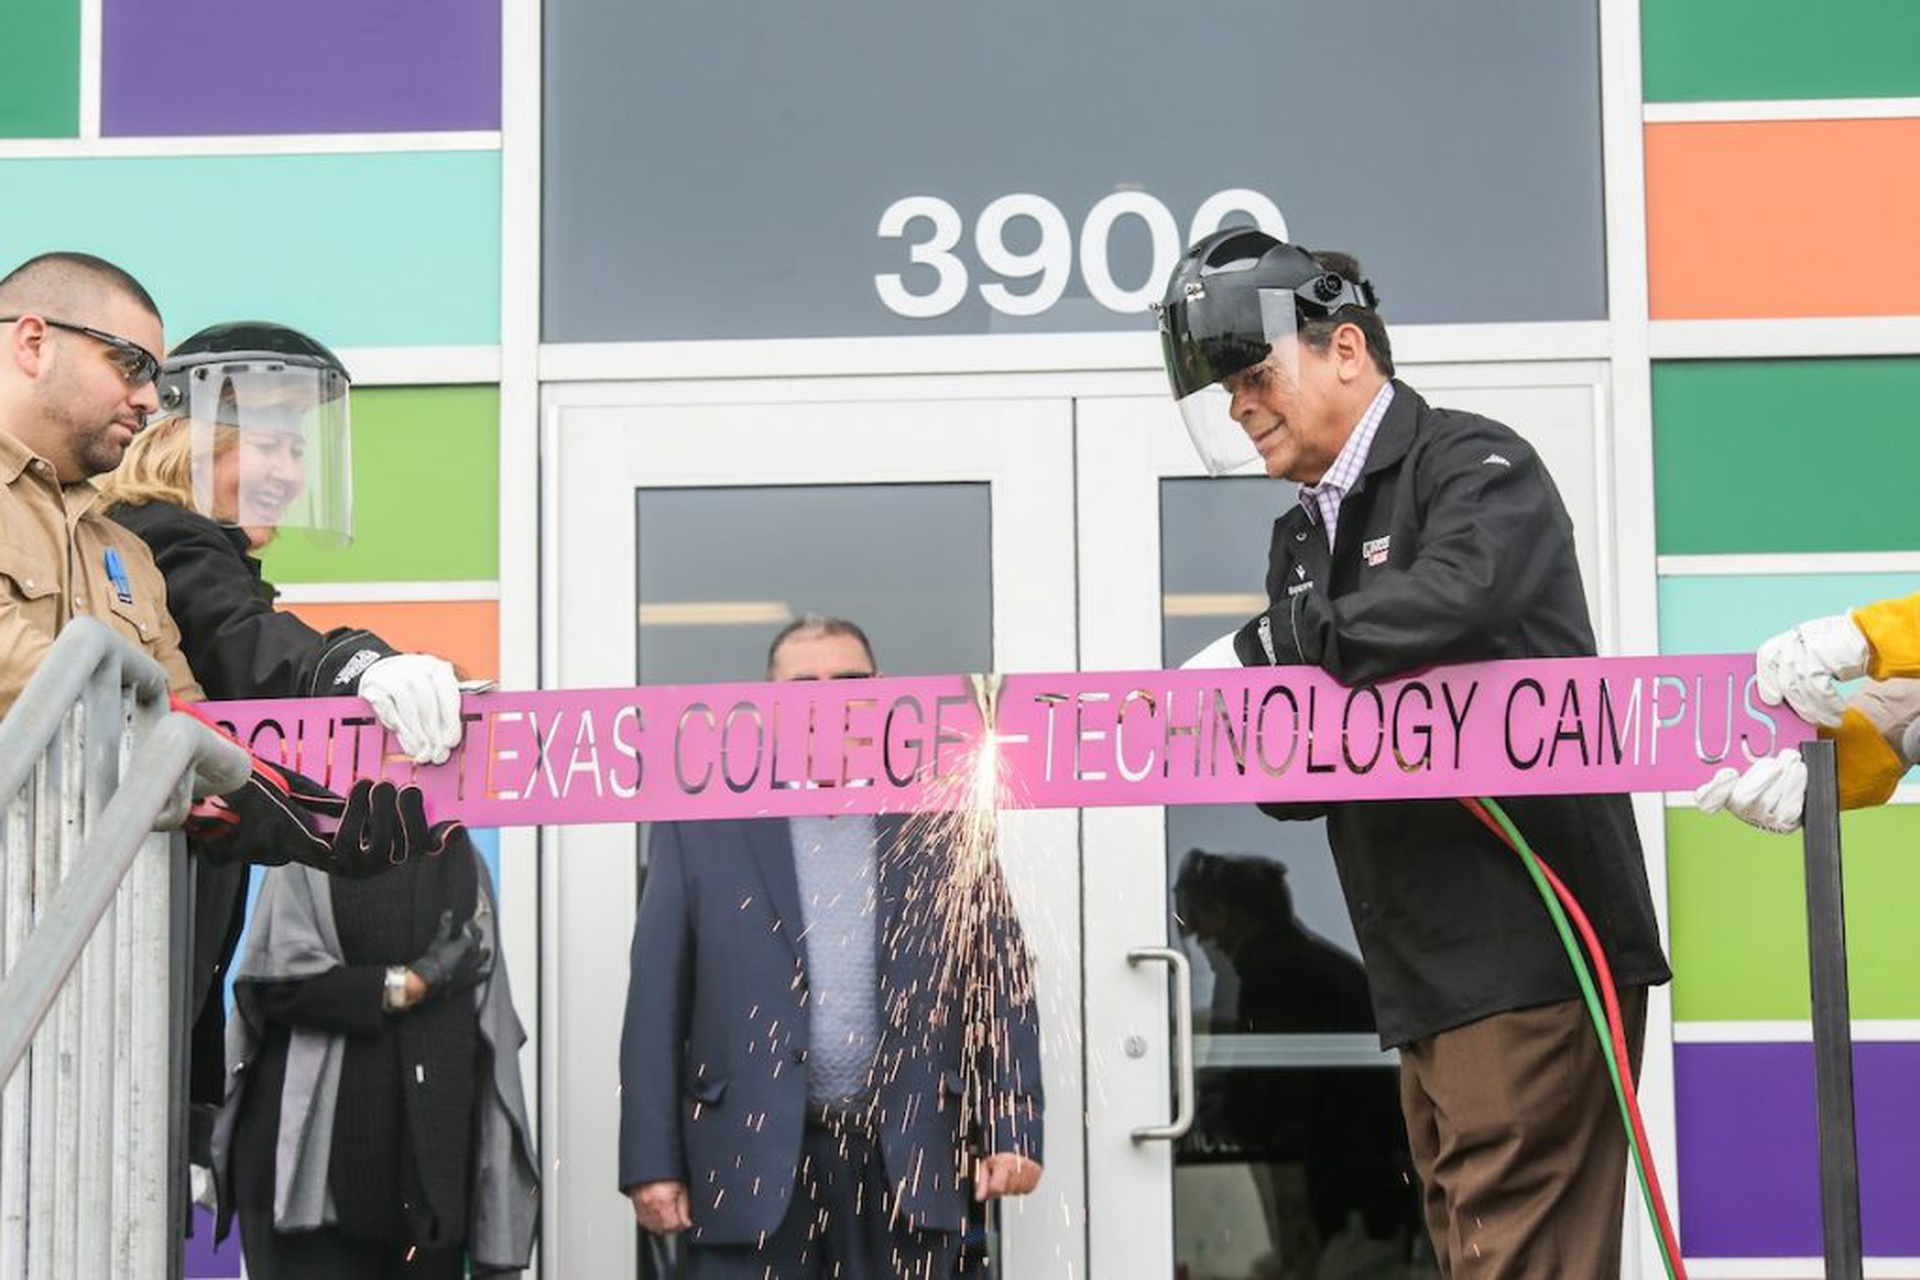 Technology-Campus-Expansion-Ribbon-Cutting_